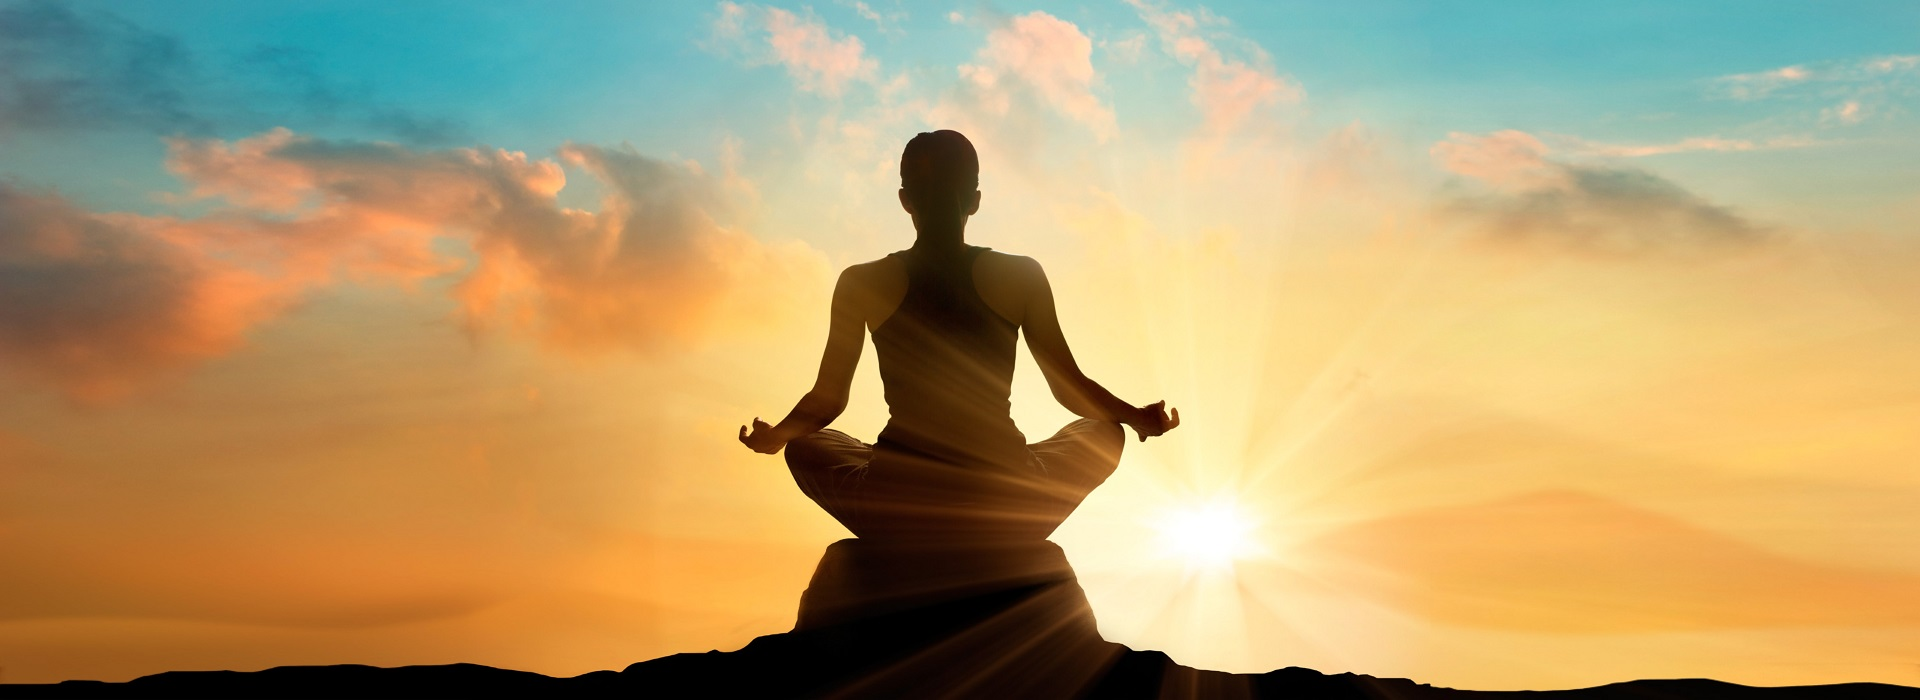 girl sitting on a rock with mountains in the background at sunset in meditation pose